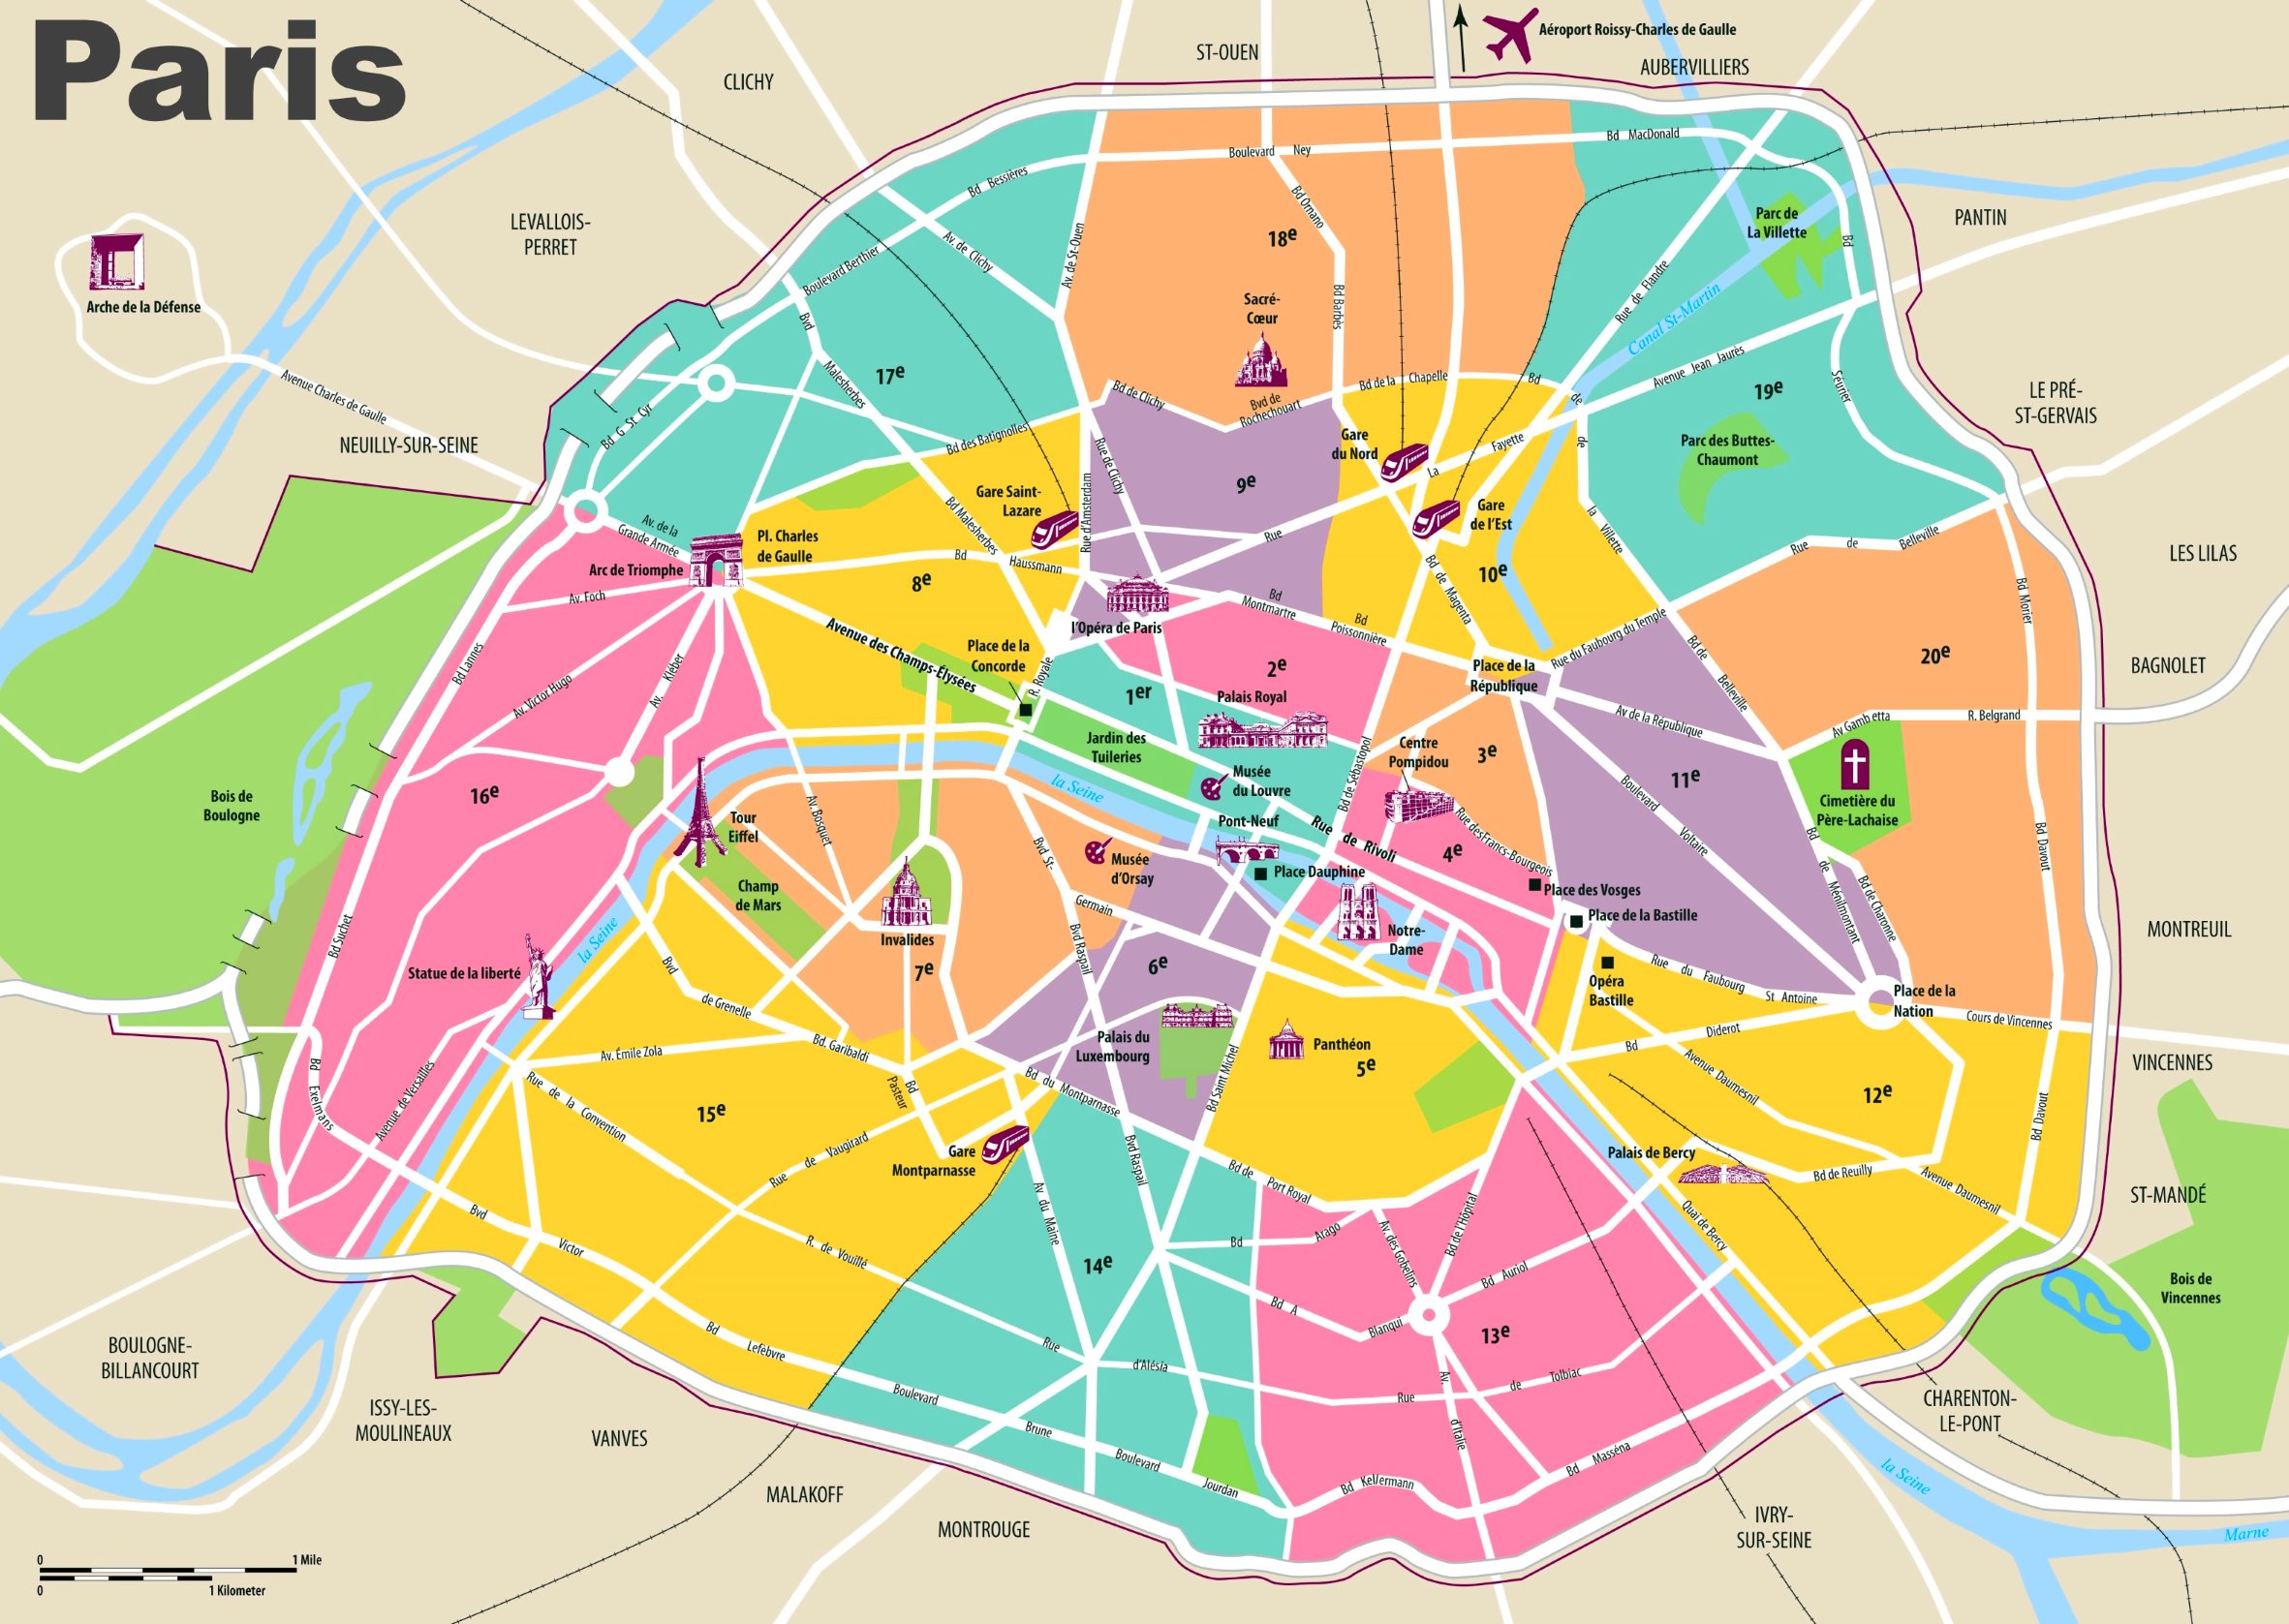 Paris Maps France – Tourist Attractions In Paris Map